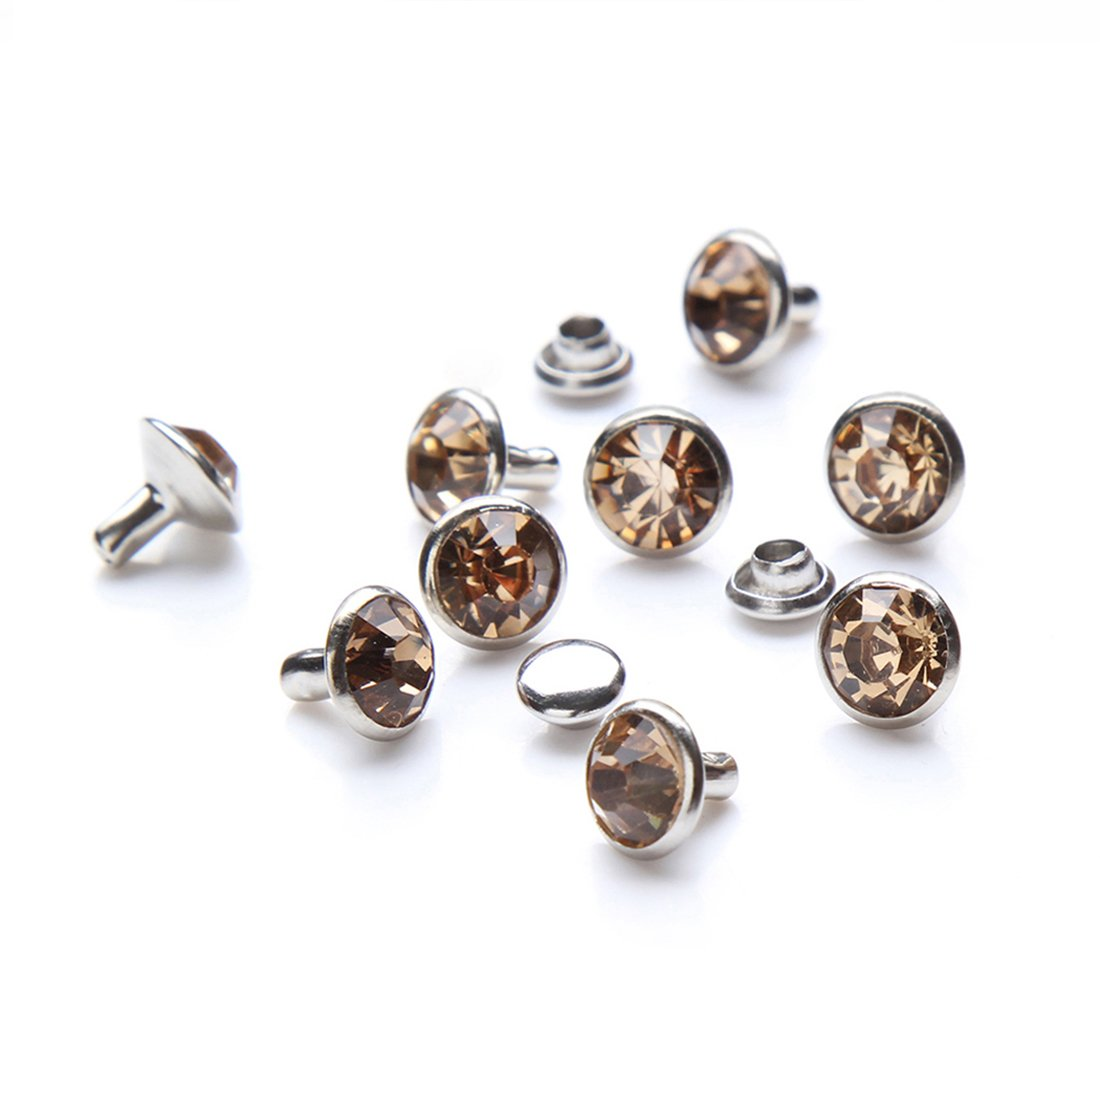 100 Sets Cz Colorful Crystal Rapid Rivets Silver Color Spots Studs Double Cap for DIY Leather-Craft (Champagne, 8MM) DasGarden A-RVTS1001